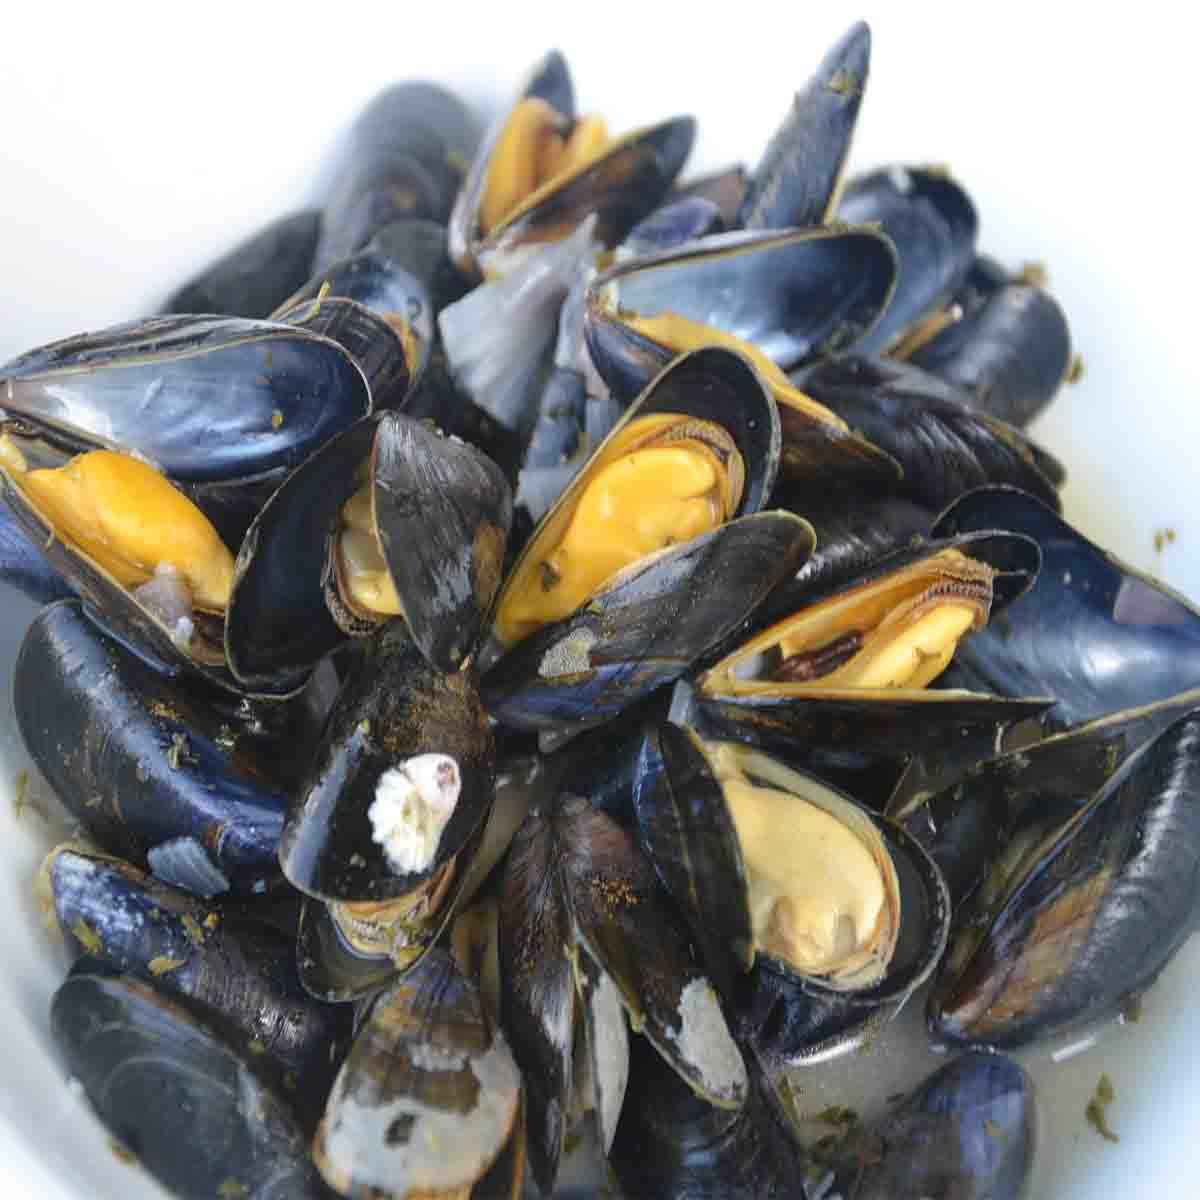 close up view of mussels in white wine.